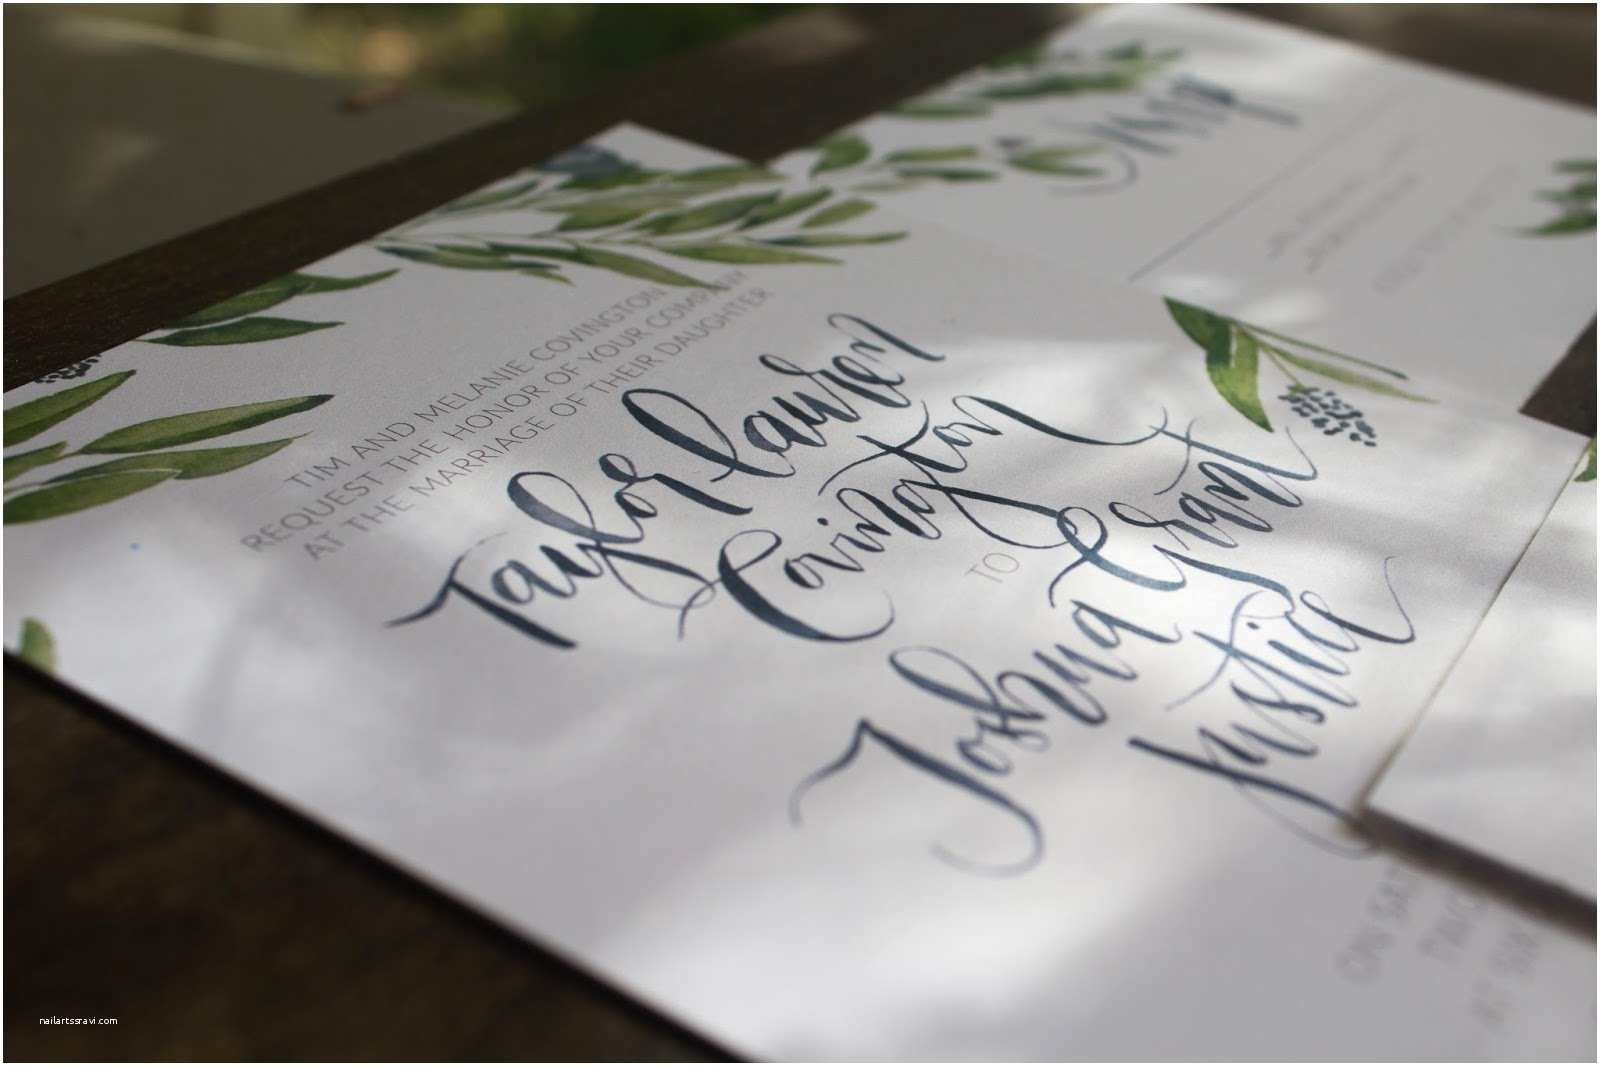 Local Wedding Invitations forever Whitney Young